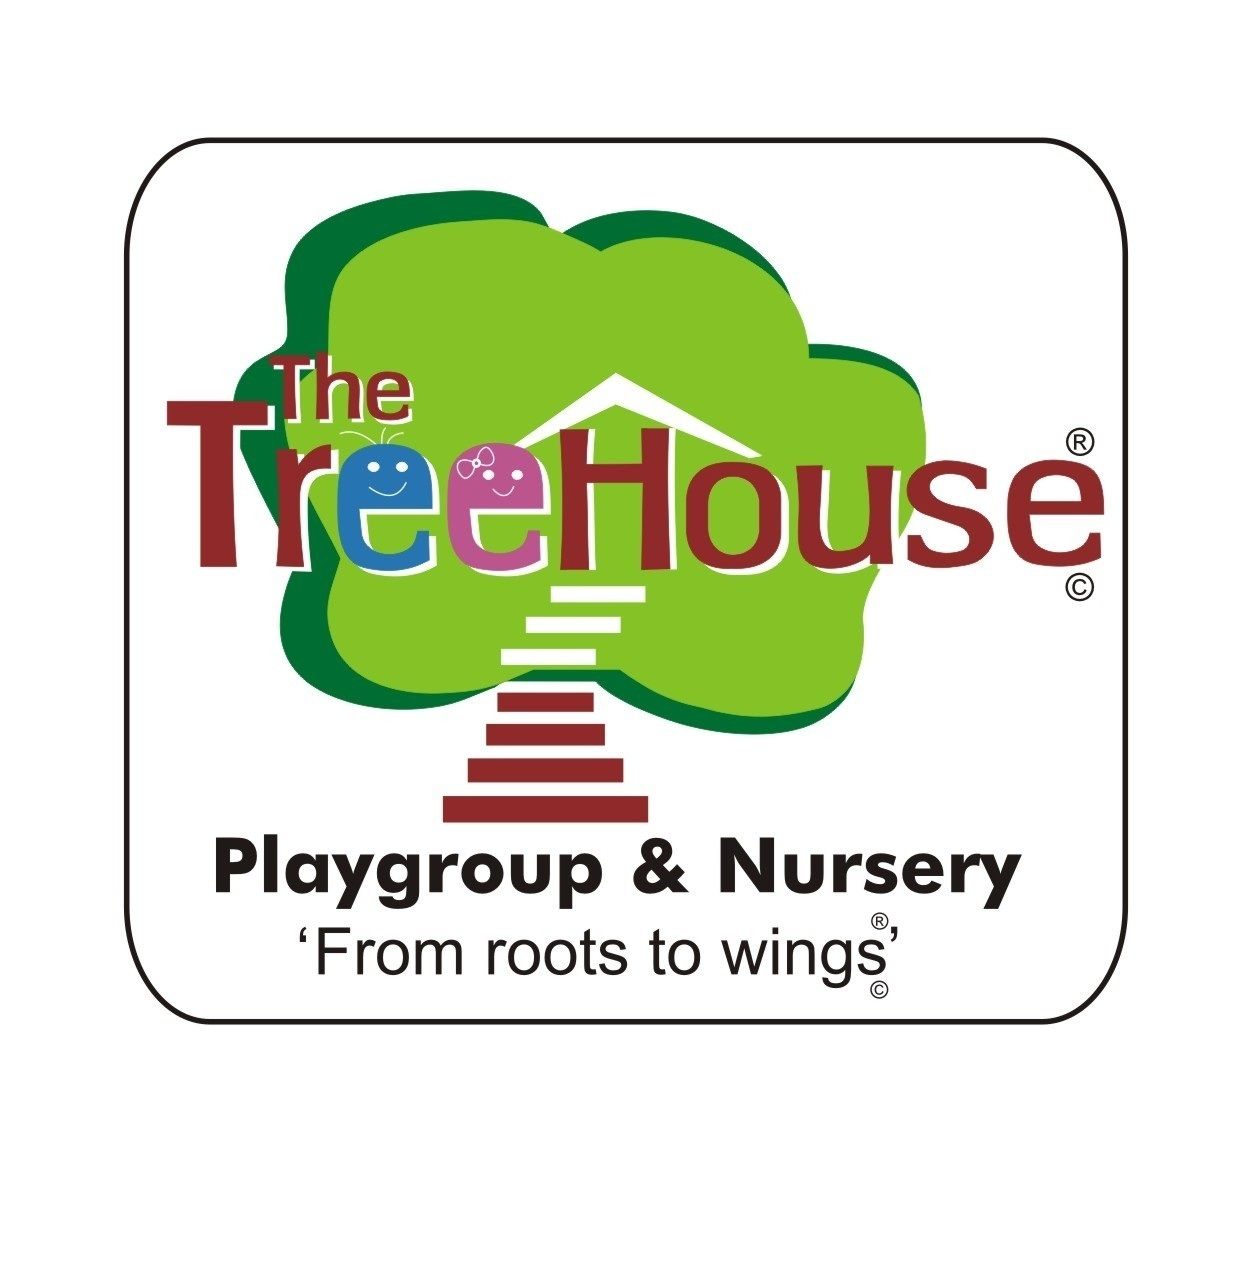 Treehouse Playgroup - Malad - Mumbai Image